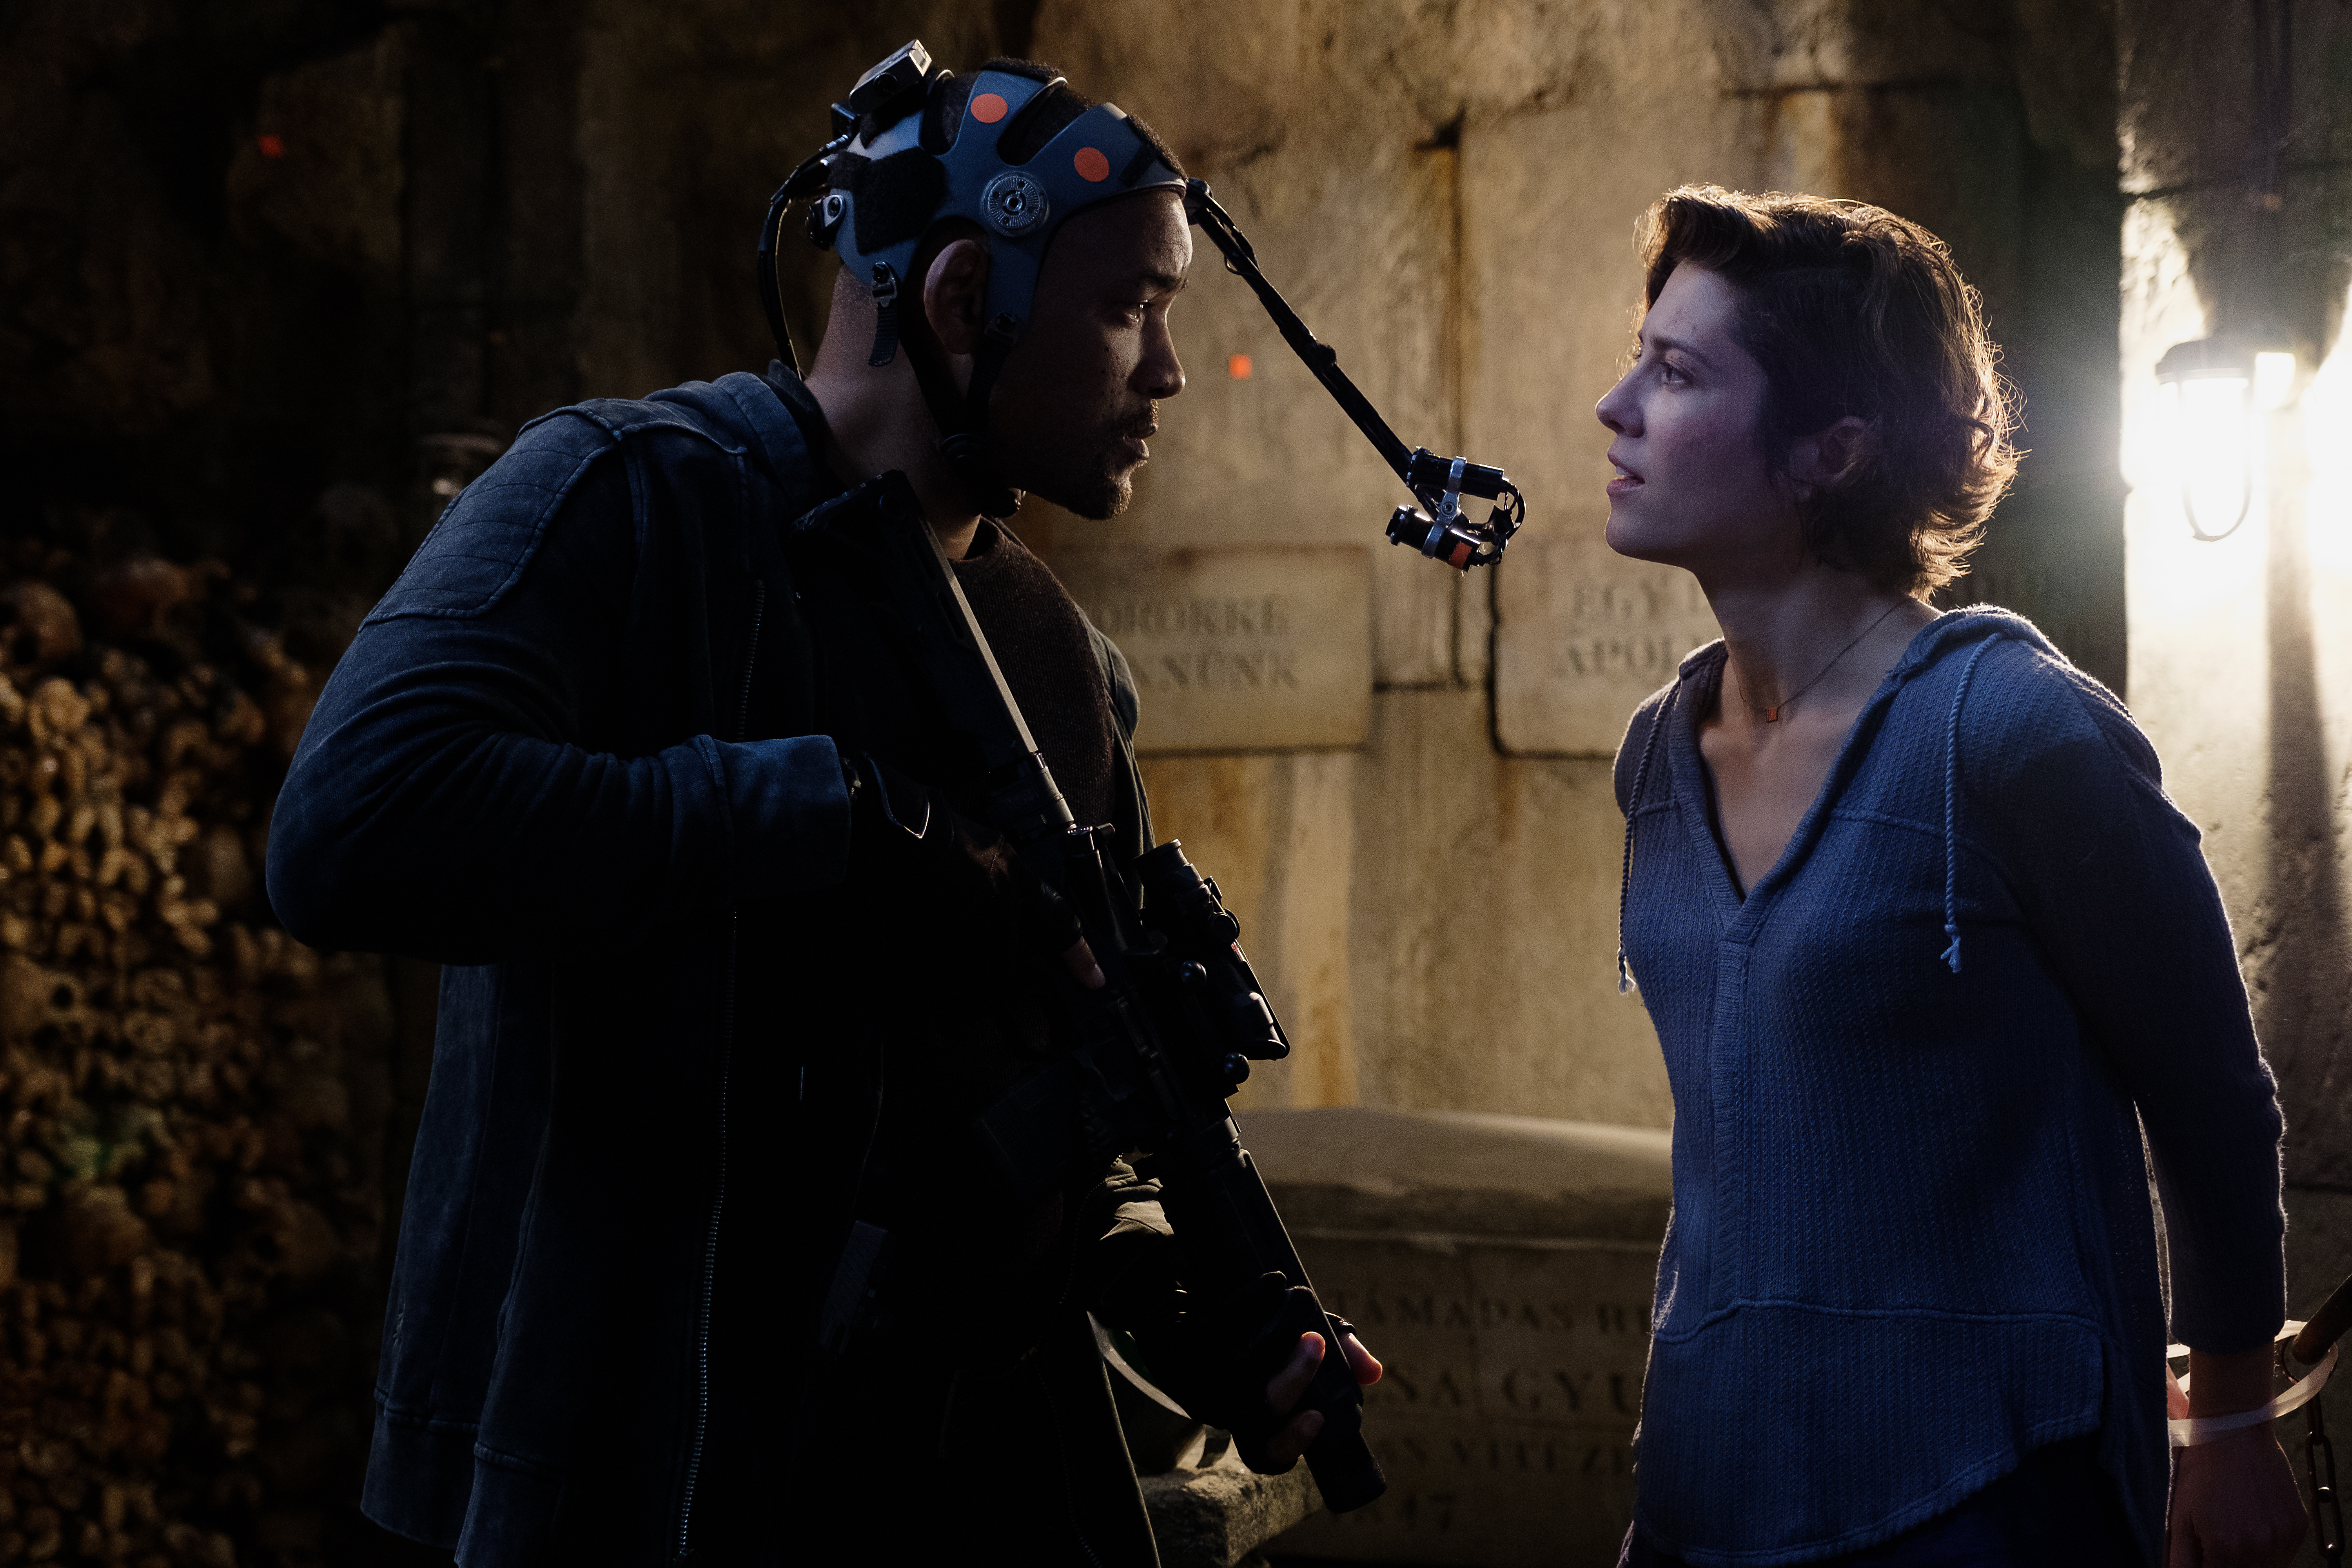 Will Smith and Mary Elizabeth Winstead on the set of Gemini Man from Paramount Pictures, Skydance and Jerry Bruckheimer Films.